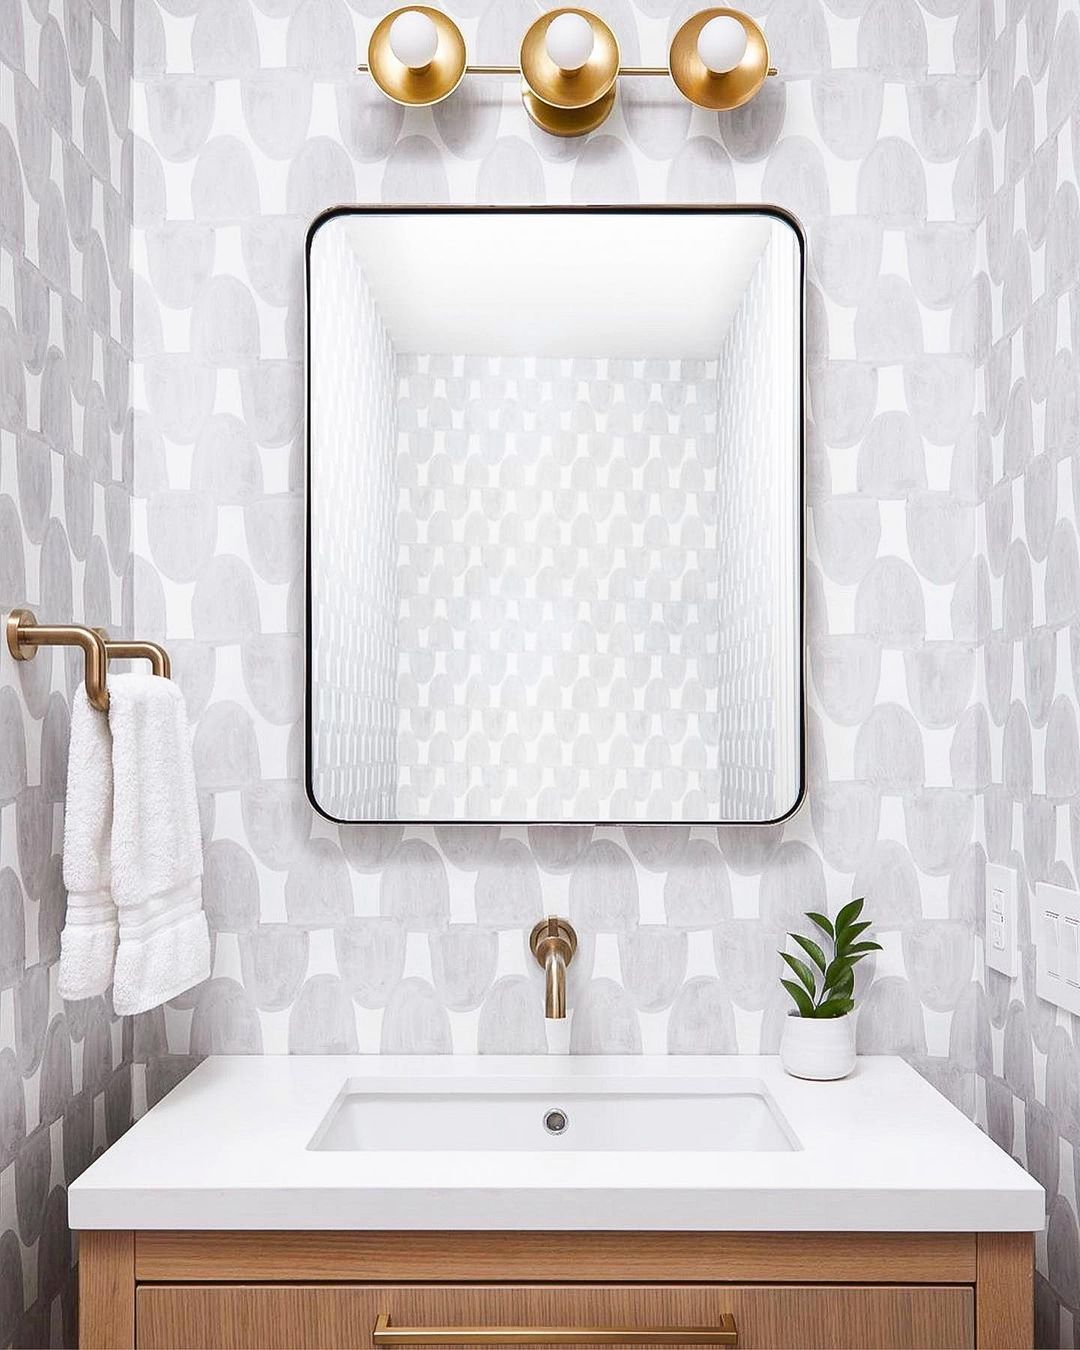 Katie S Wallpaper Installation On Instagram Installed The Arch Wallpaper By These Walls In This Beautiful In 2021 How To Install Wallpaper Powder Room House Rooms